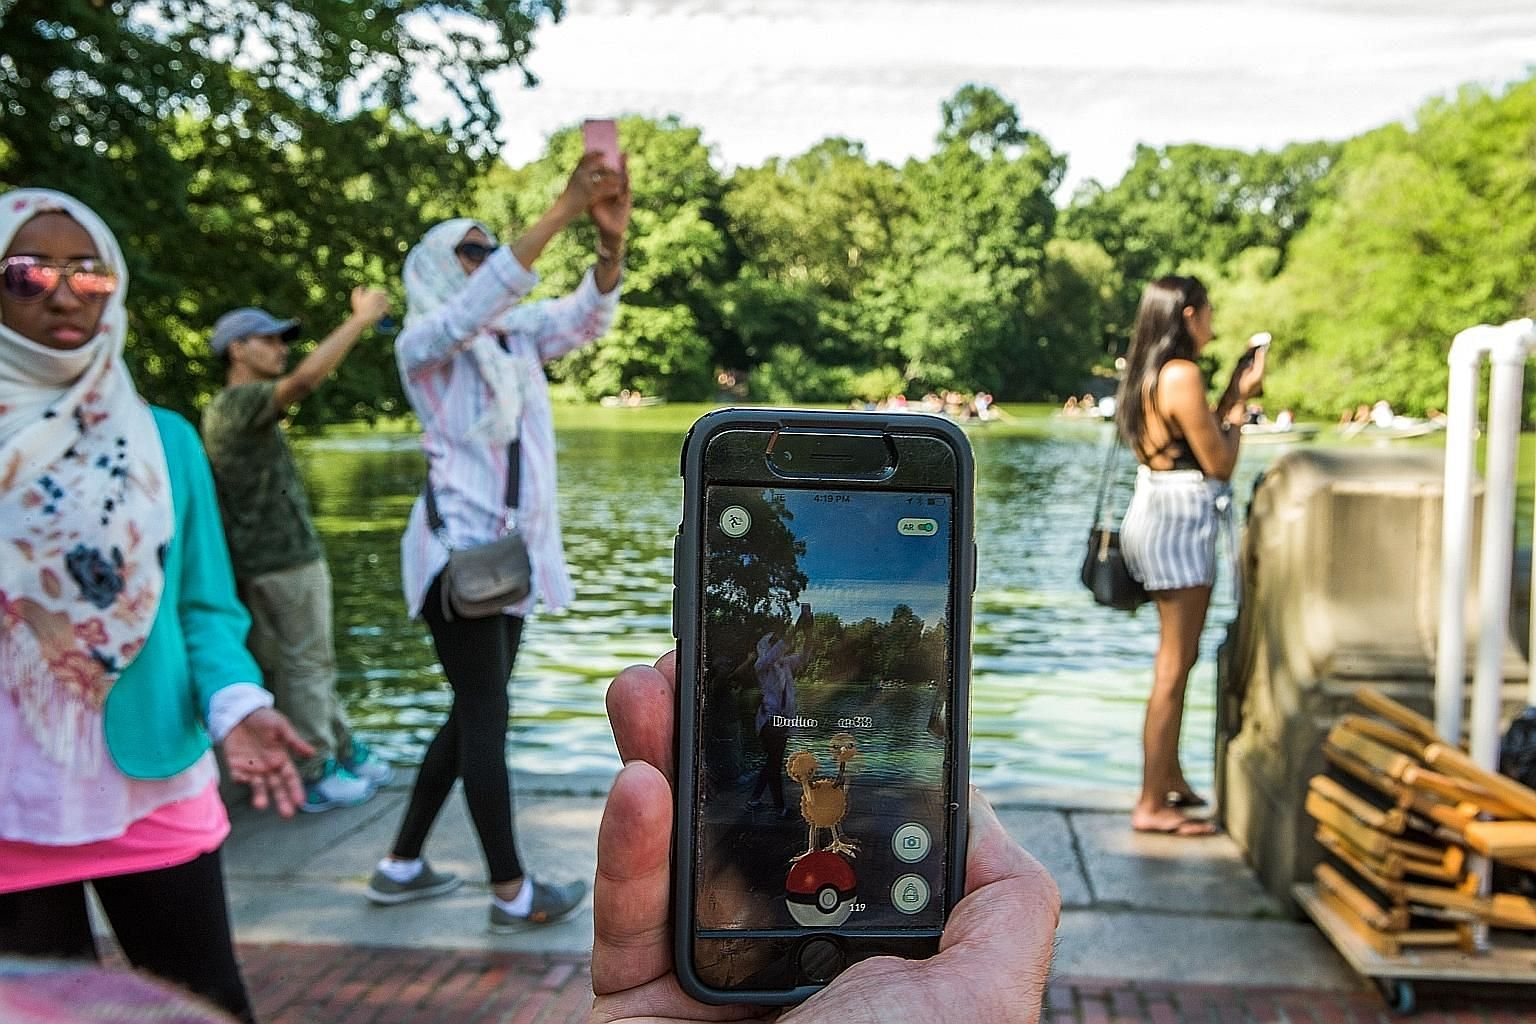 A user playing Pokemon Go - the augmented-reality game which fuses digital technology with the physical world - at New York's Central Park in 2016. After the app was available in Canada, the Canadian Armed Forces issued a public warning, urging civil